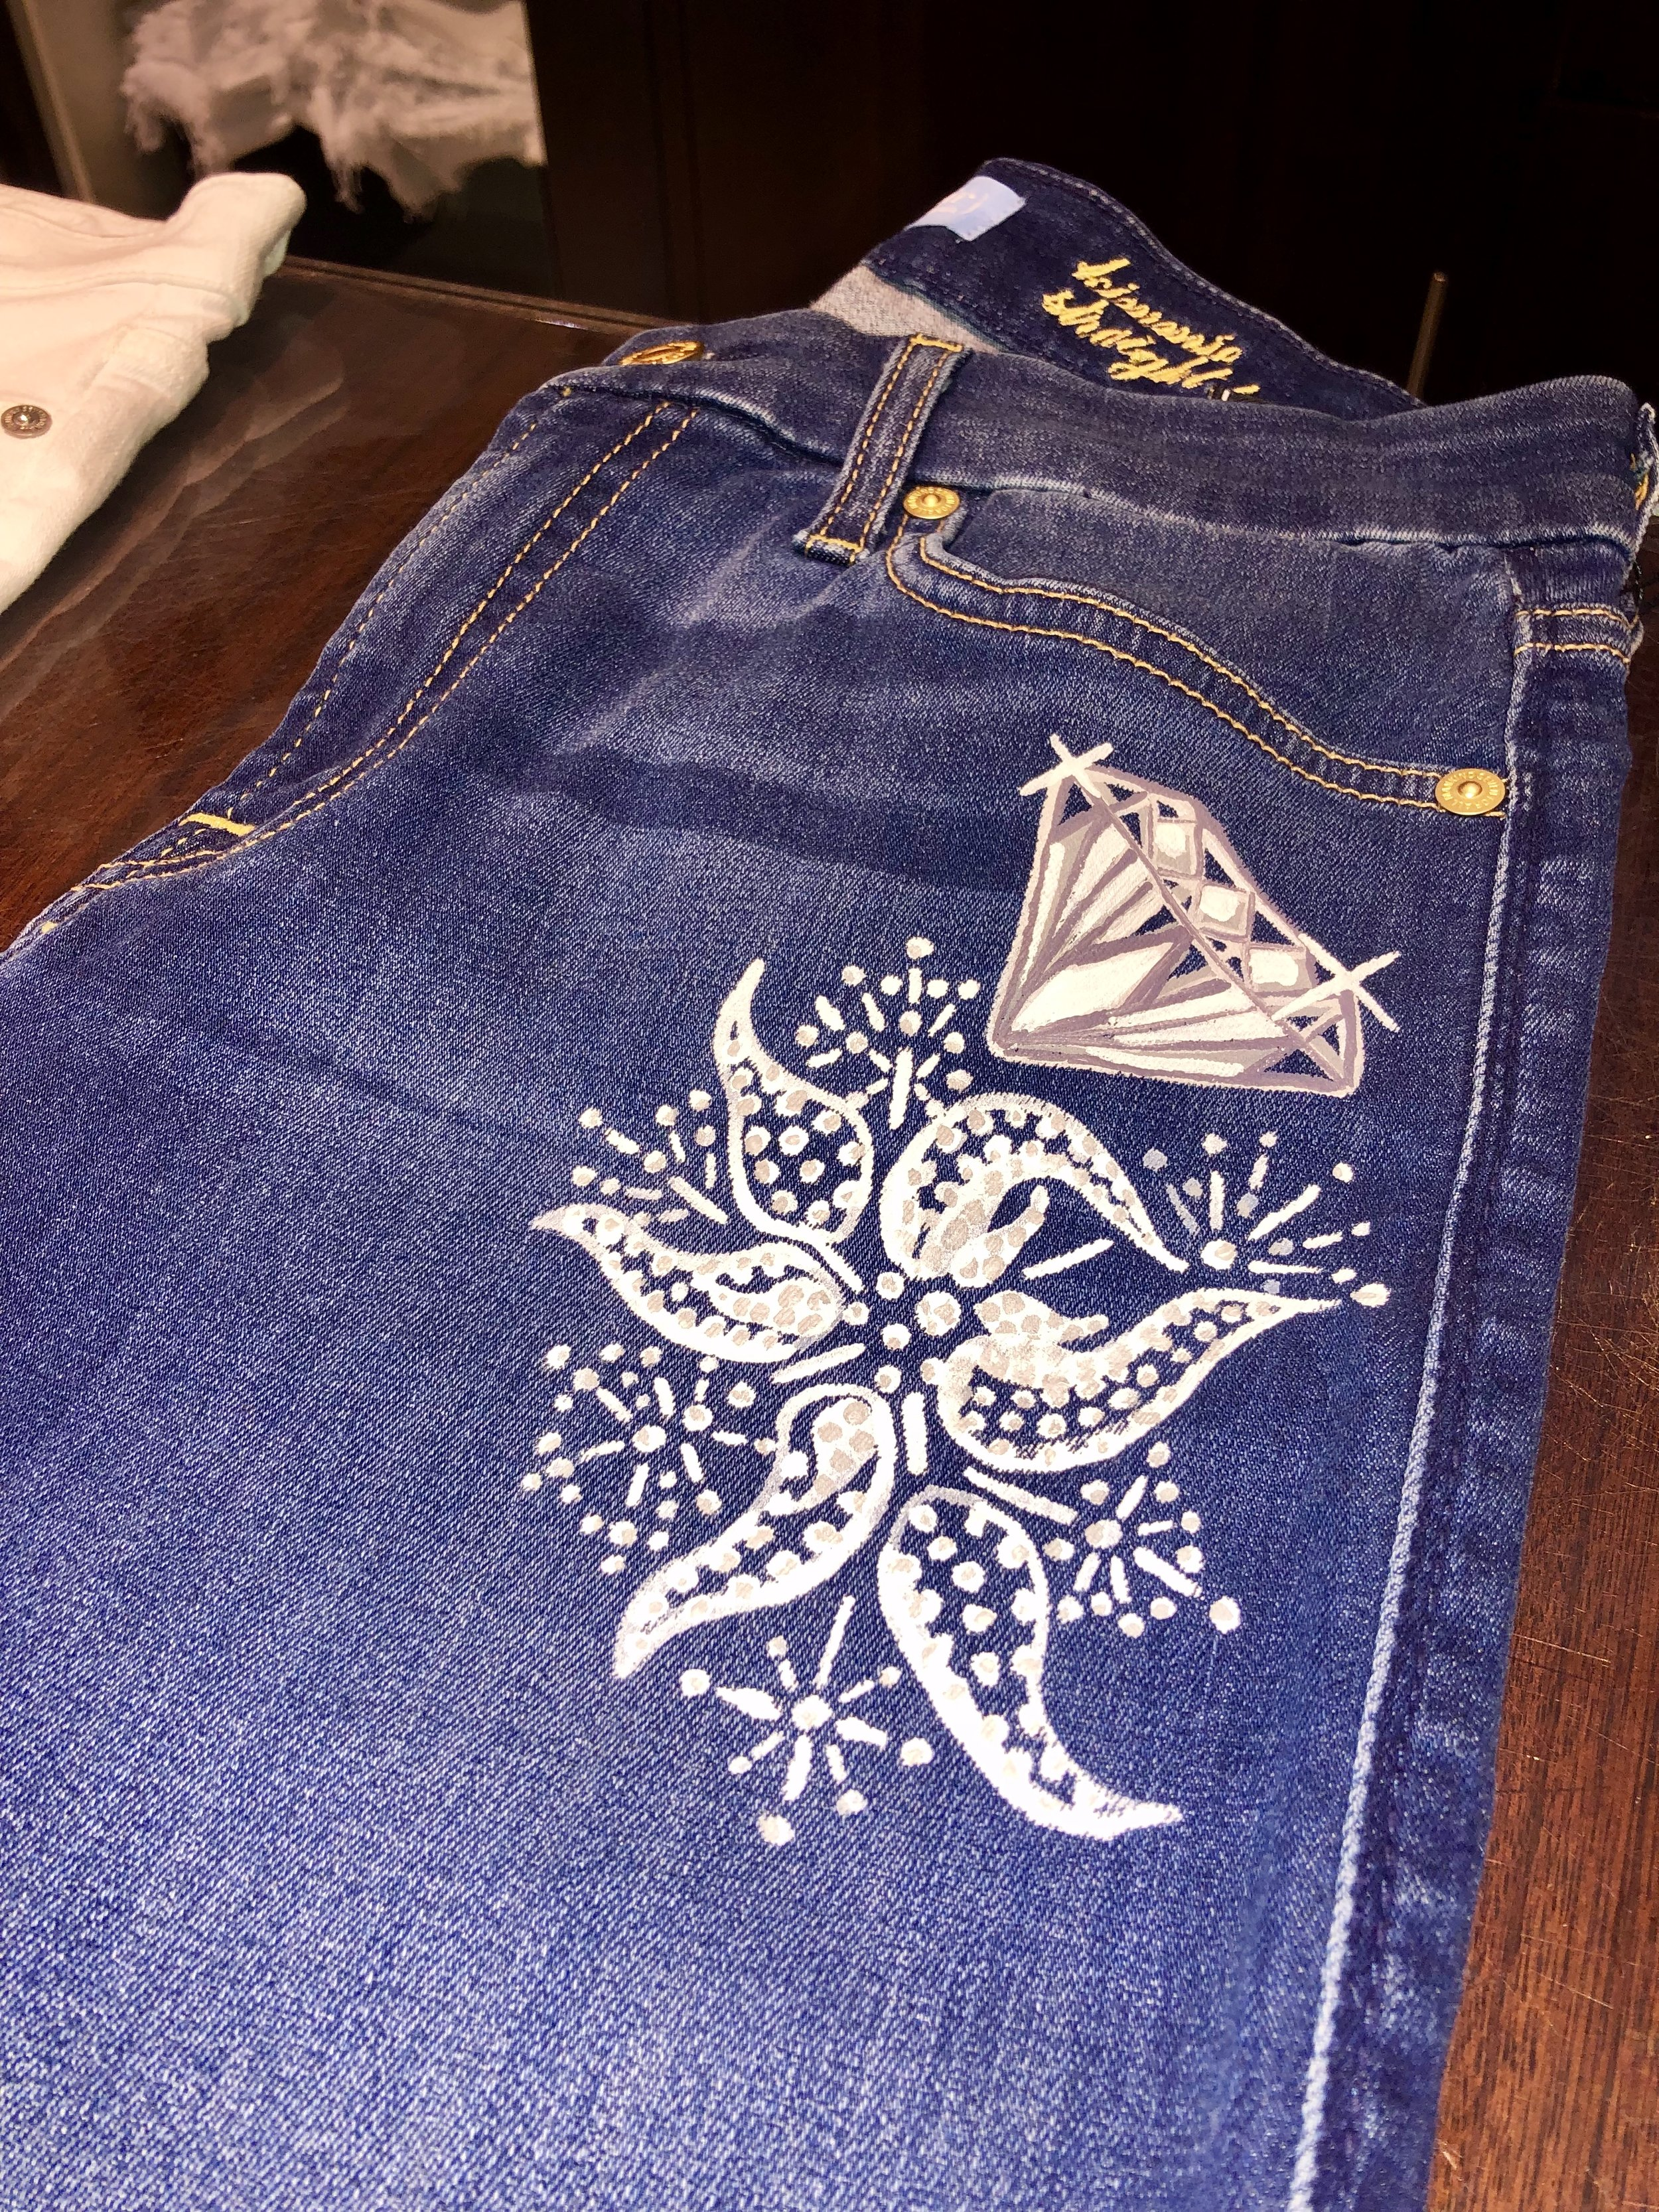 katrina-eugenia-live-painting-nyc-live-art-nyc-painted-denim-7-for-all-mankind-7-jeans82.jpg